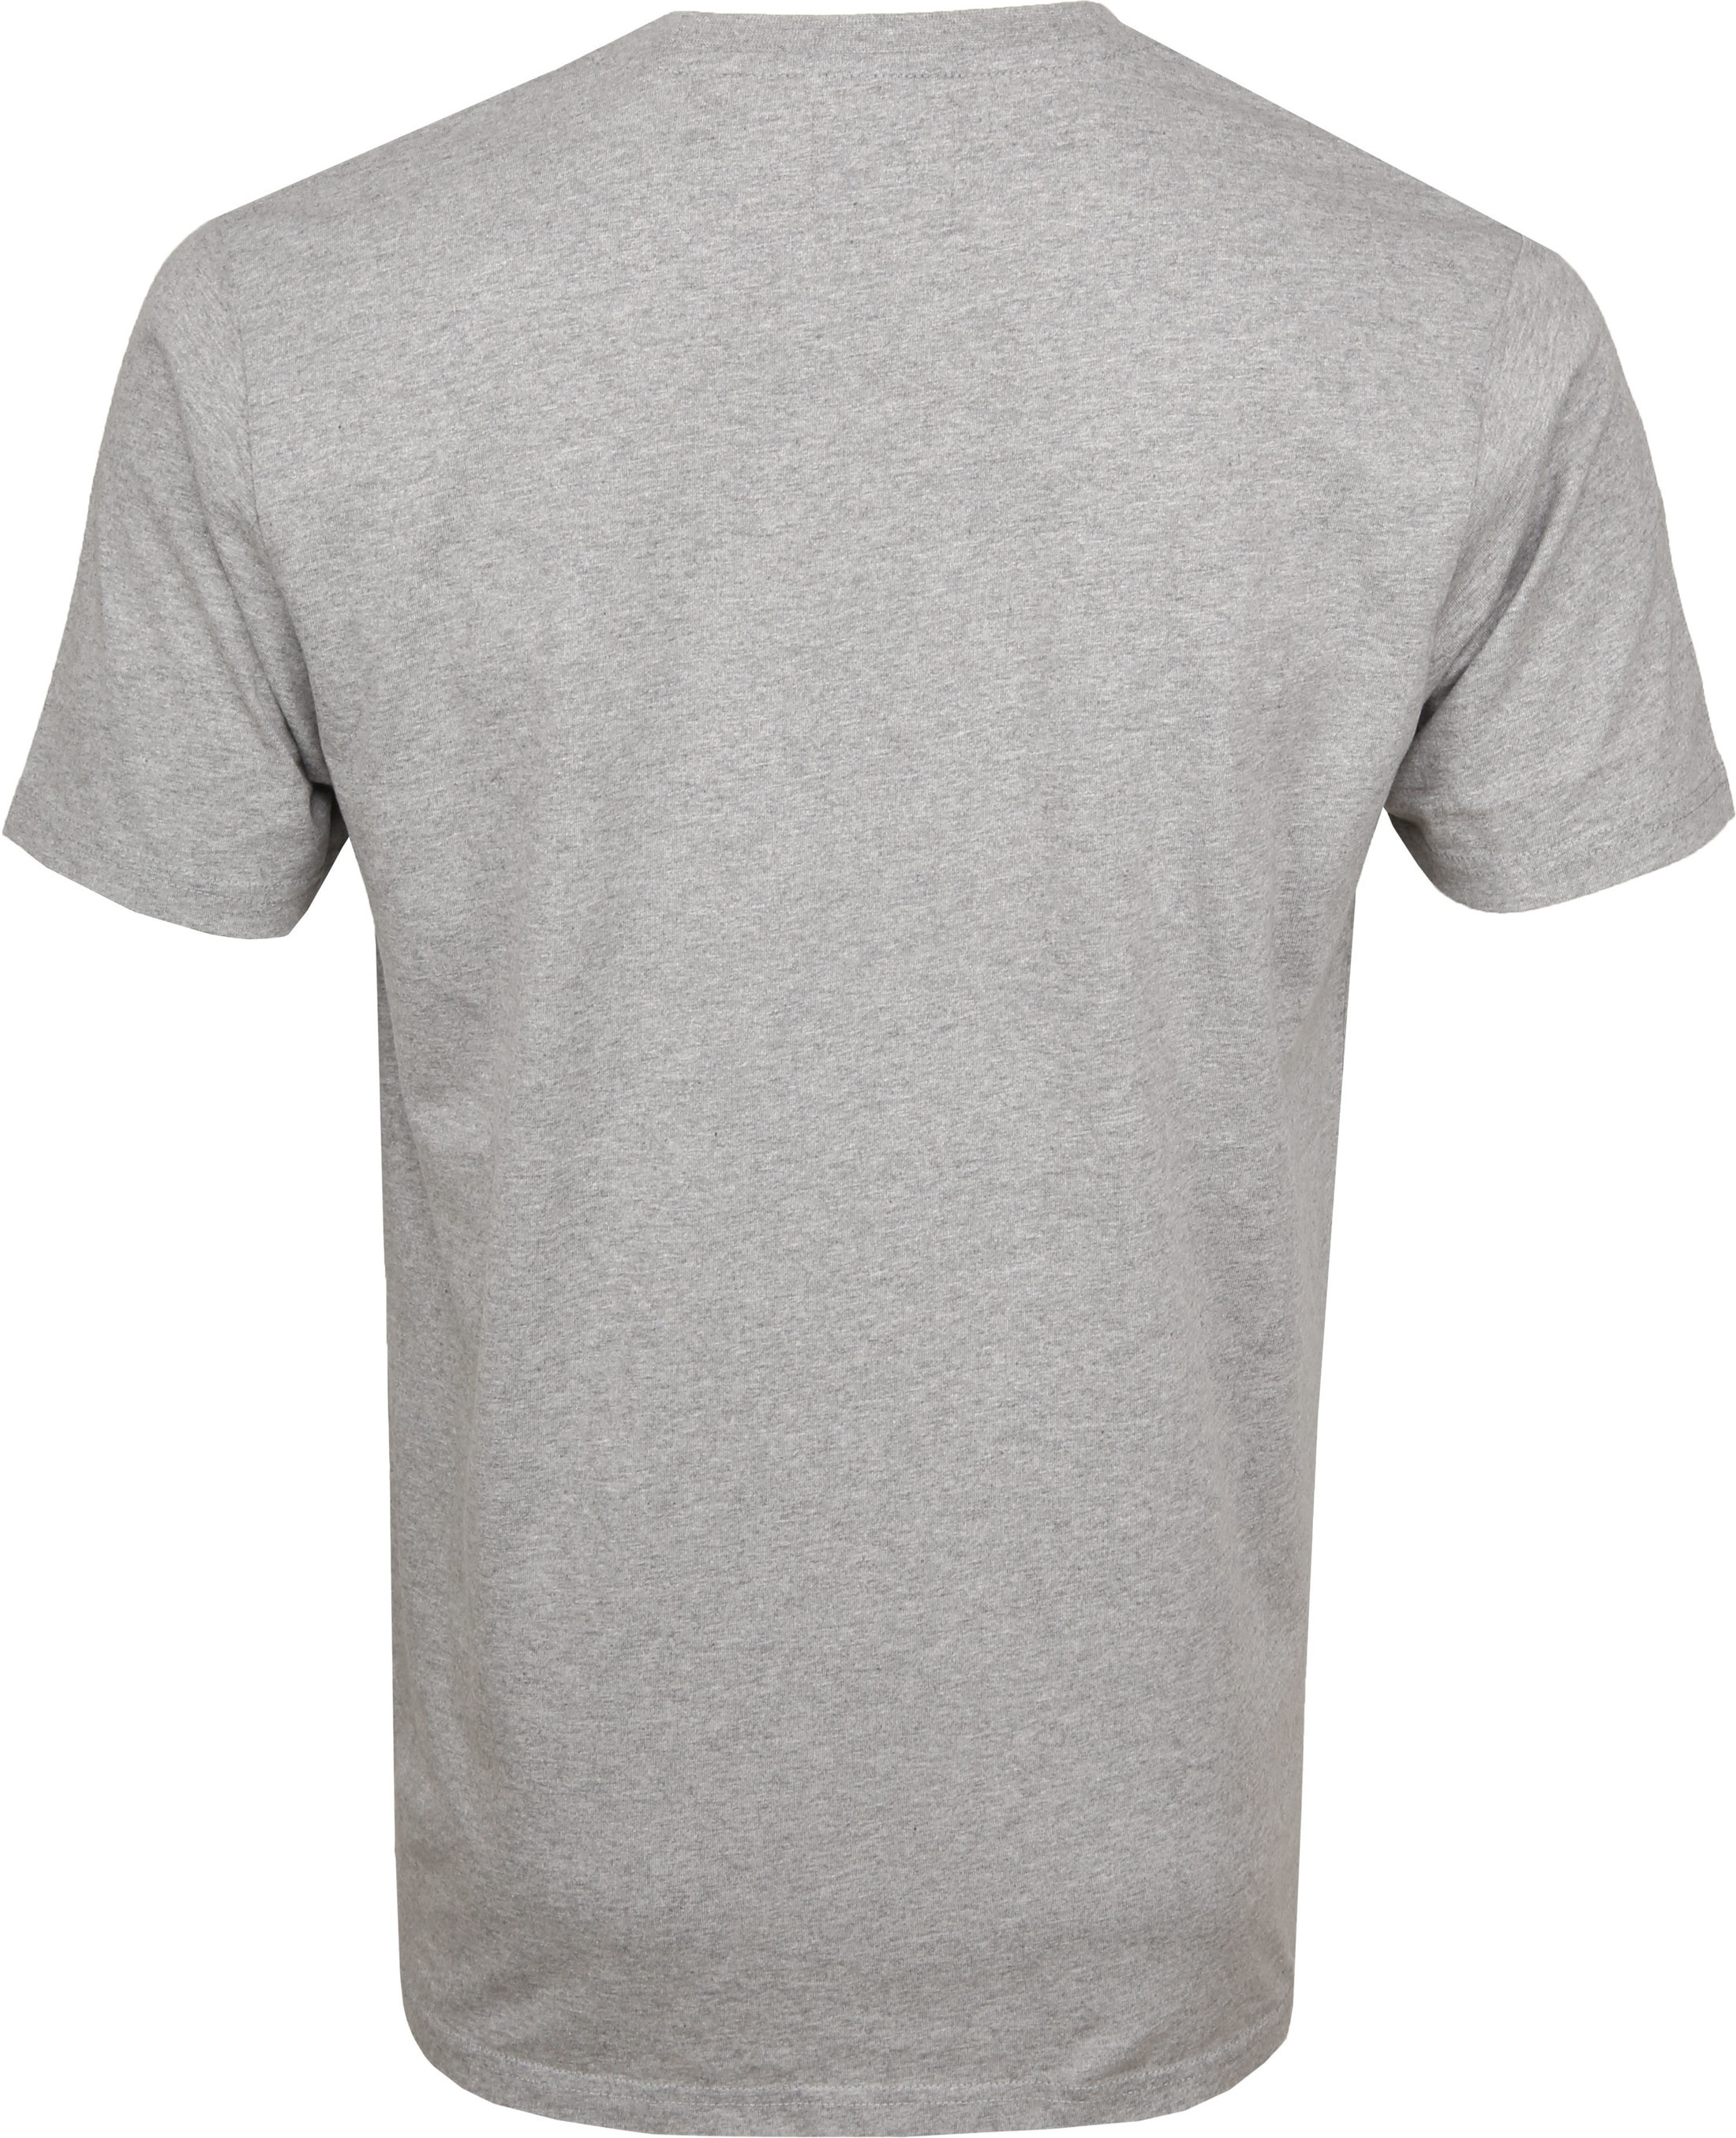 Colorful Standard T-shirt Heather Grey foto 2